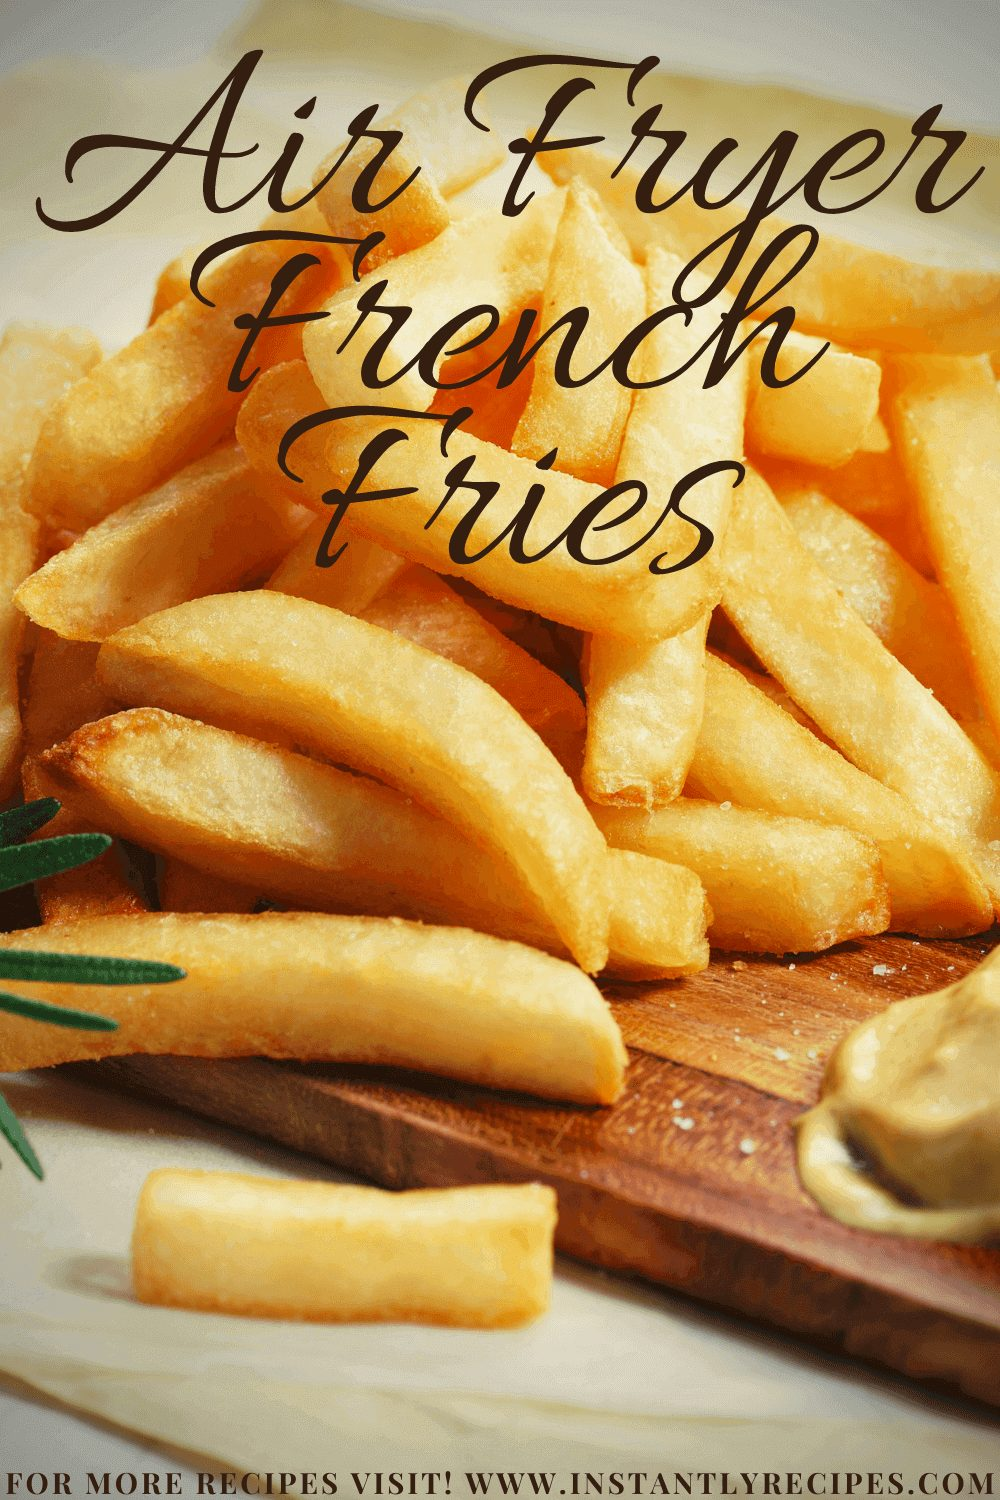 Air fryer frozen french fries with ketchup and moutard sauce